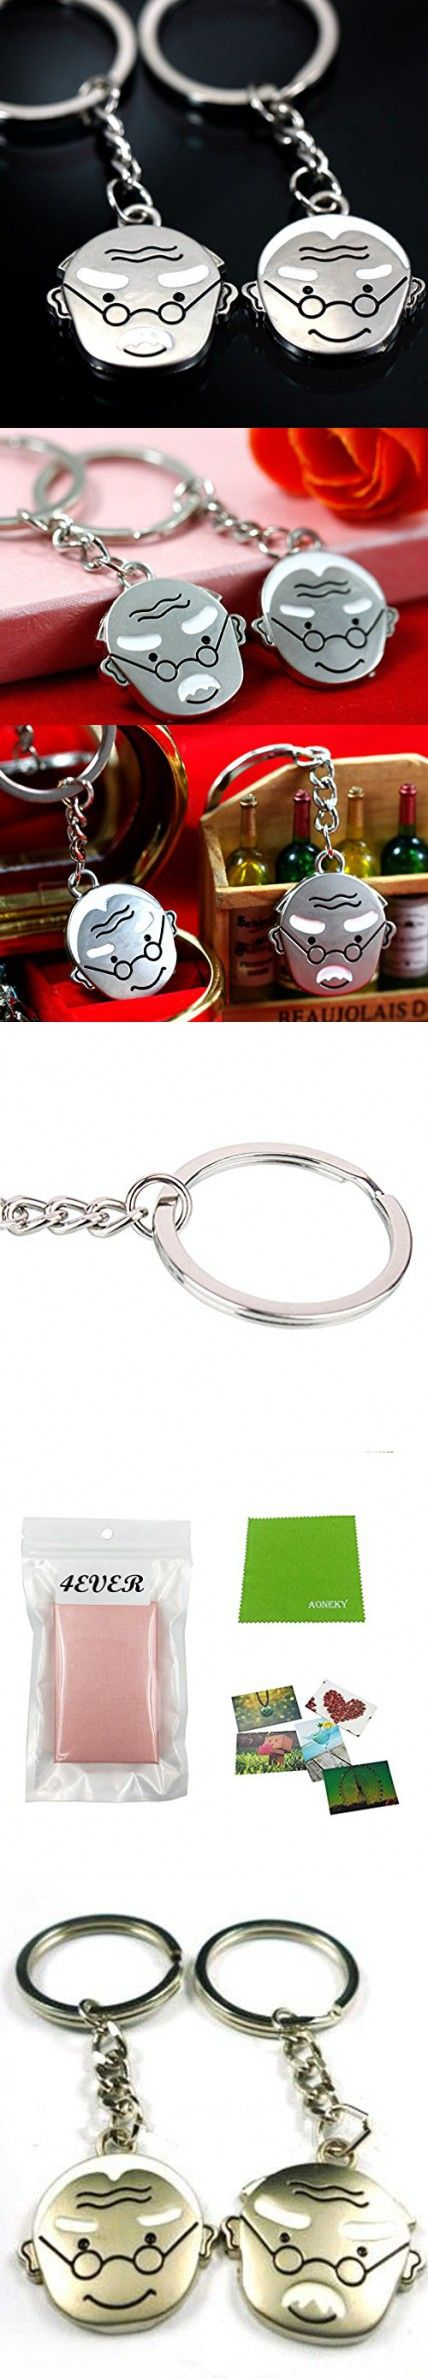 4EVER Love Life Together Old Man Elderly Couple Keychains (With Gift Box and Greeting Card) Key Chain Gift for Valentine Wedding Anniversary (A Pair)